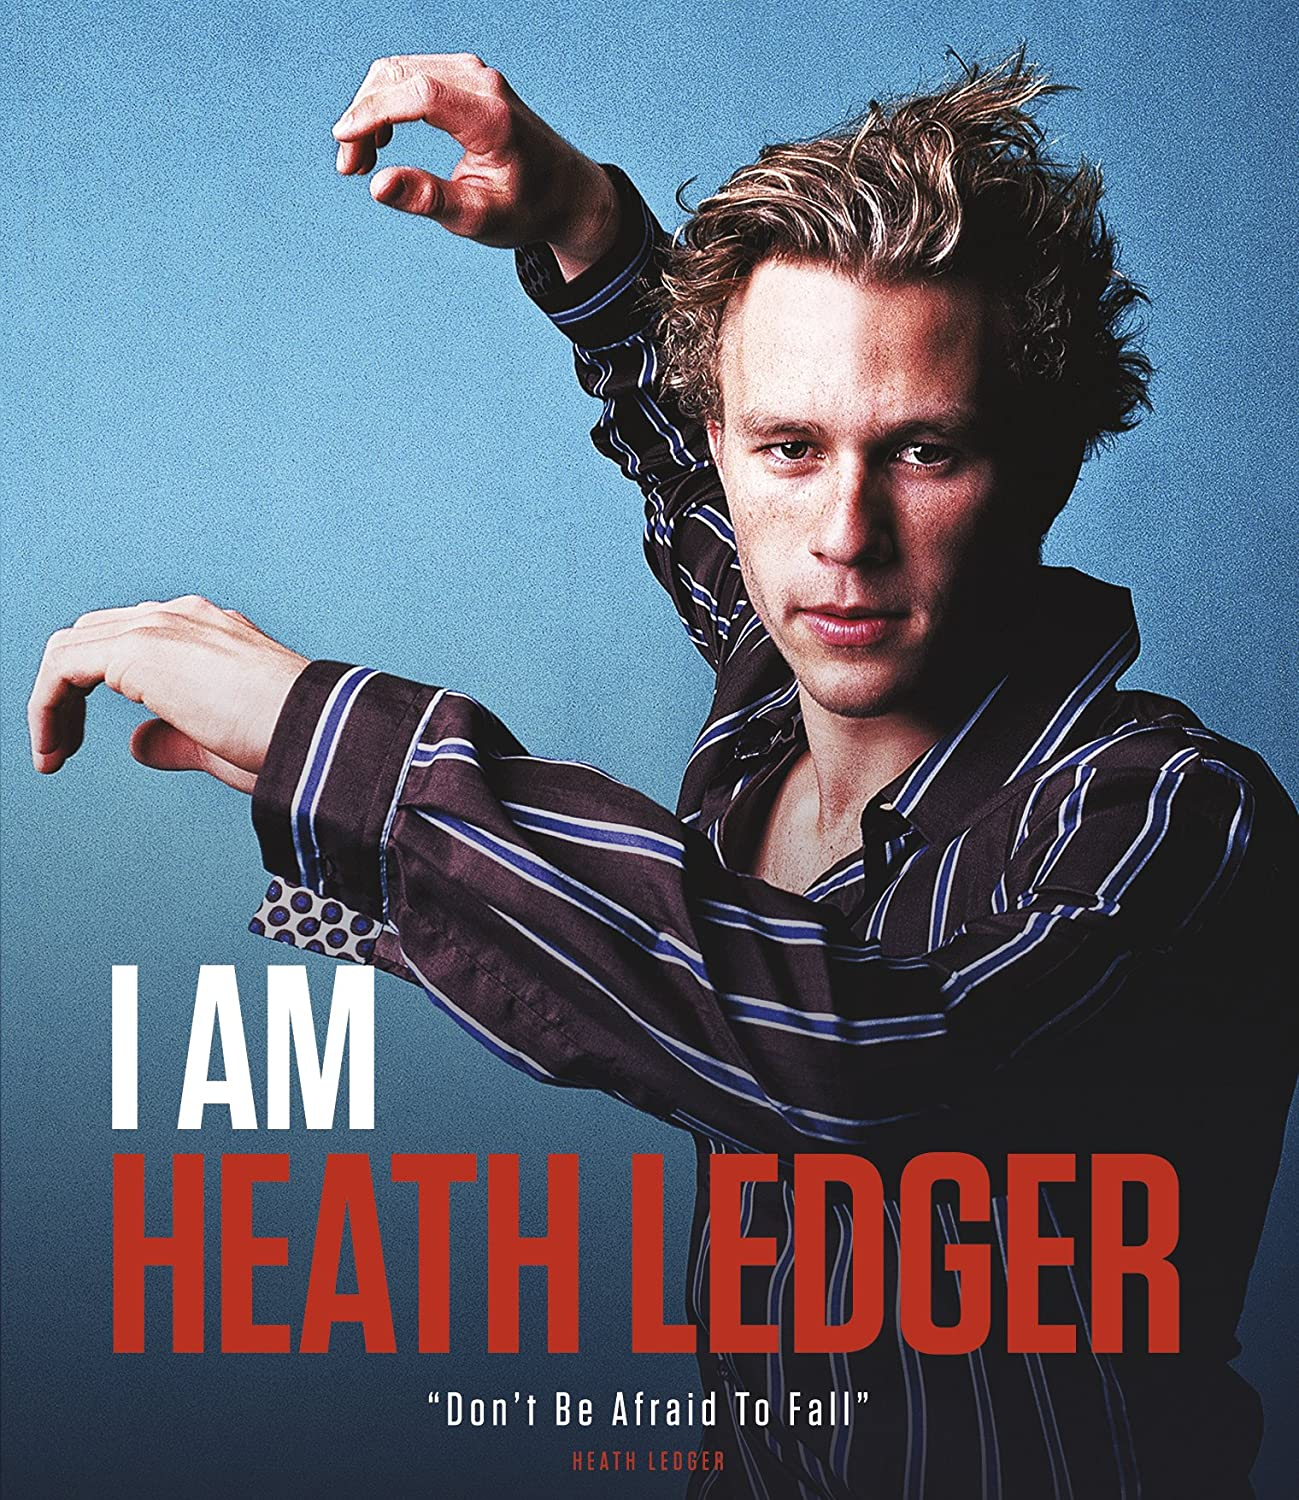 I Am Heath Ledger Blu Ray Blu Ray Naomi Watts Self Ang Lee Self Ben Mendelsohn Self Emile Hirsch Self Djimon Hounsou Self Catherine Hardwicke Self Ed Lachman Self Ben Harper Self